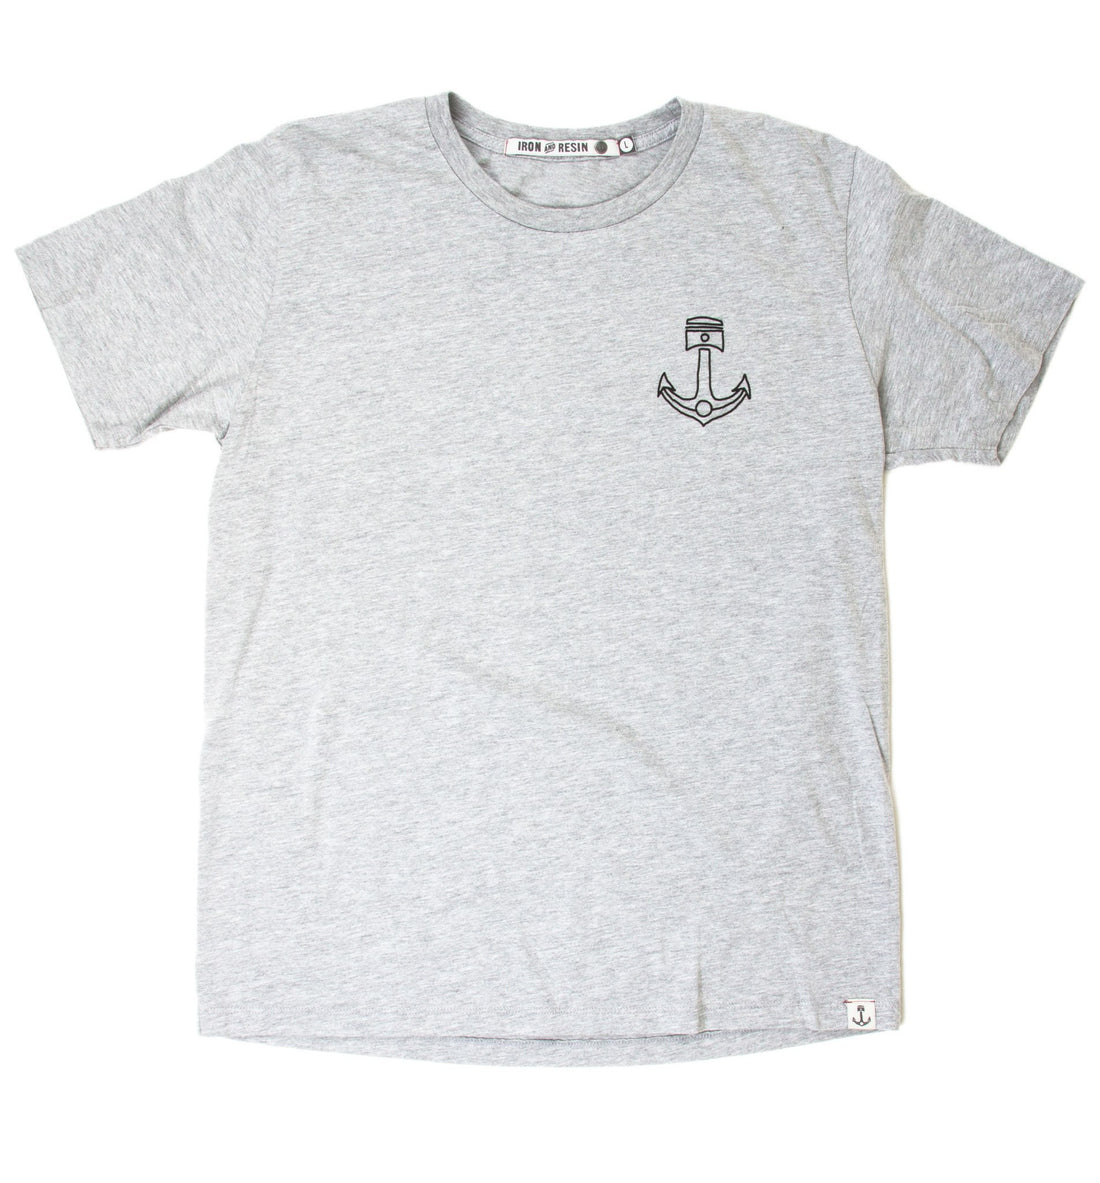 INR R.T.L. Tee - Apparel: Men's: Graphic T-Shirts - Iron and Resin